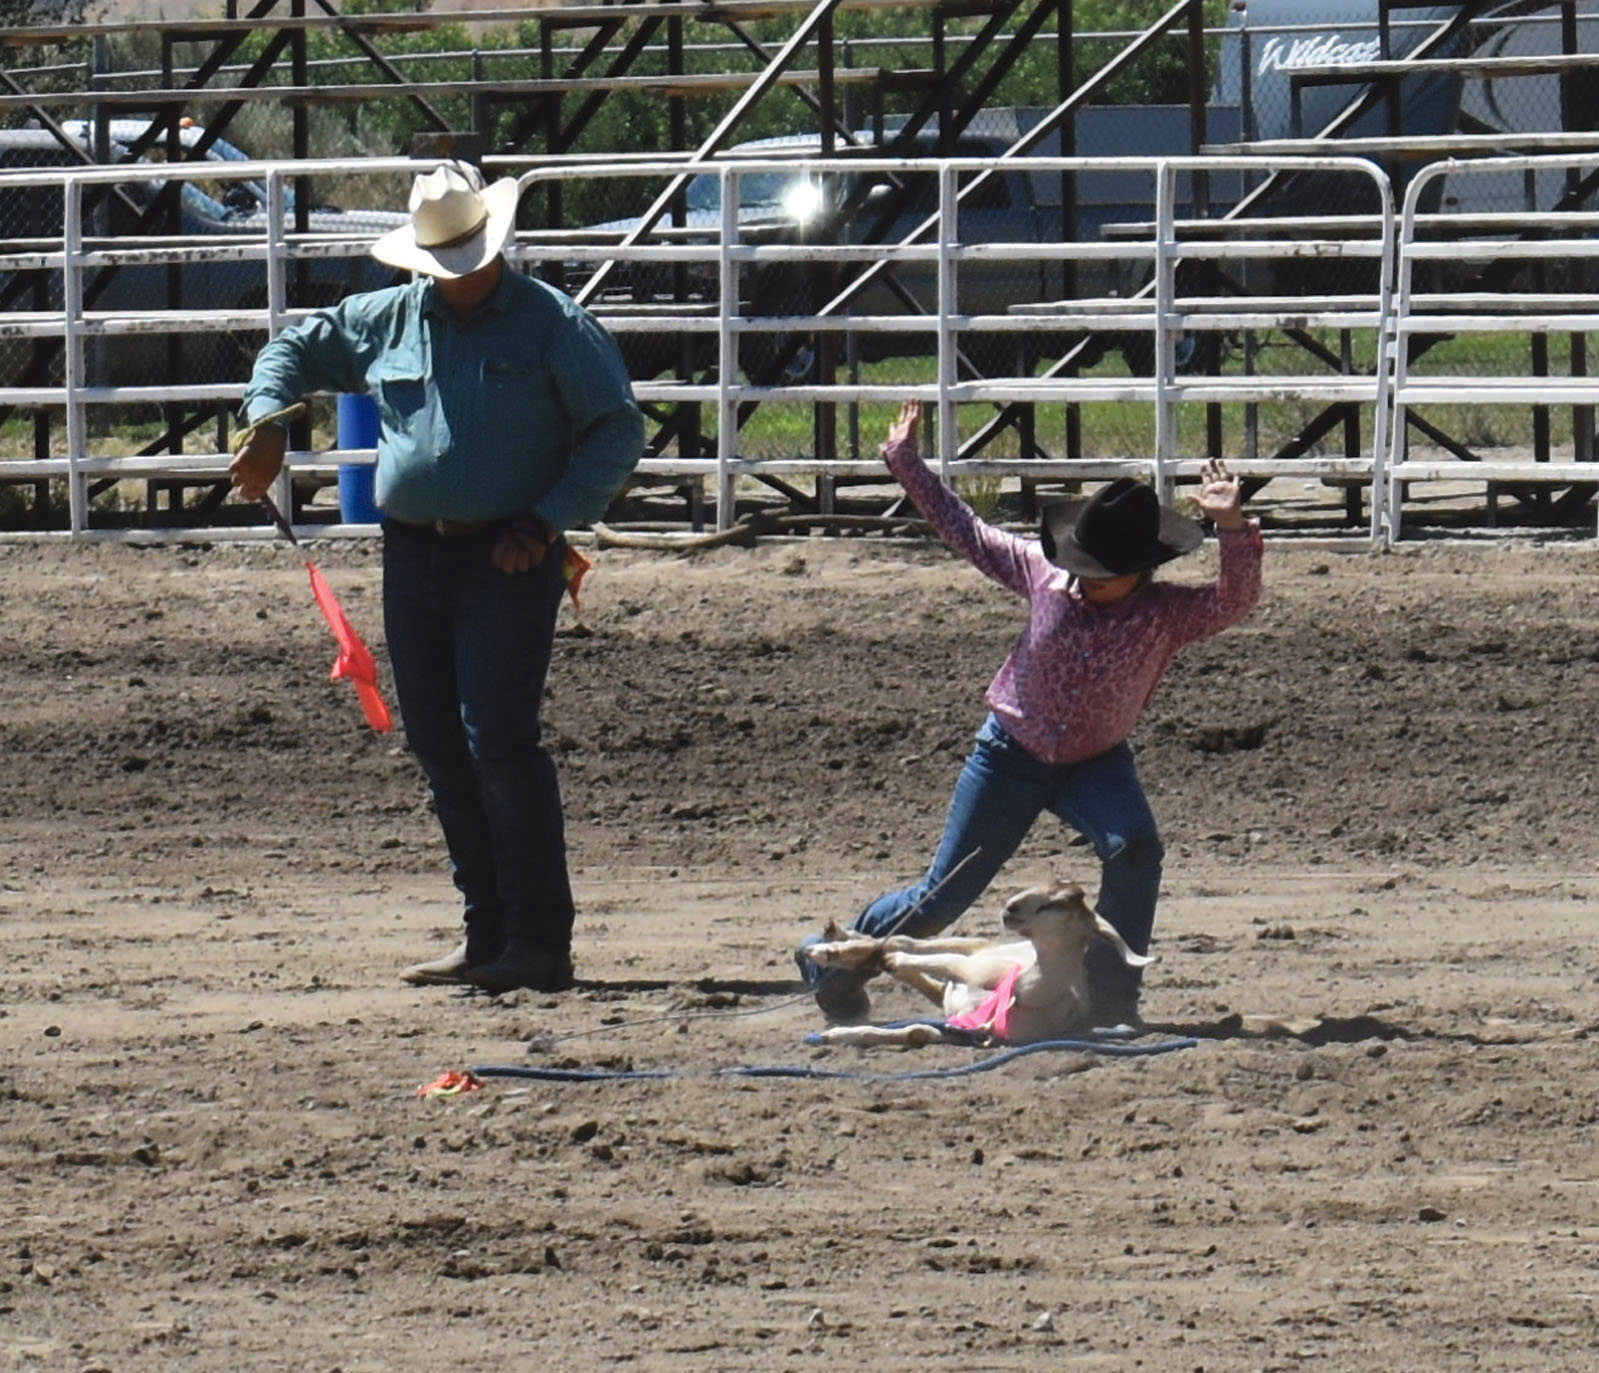 One of the officials makes sure the  cowgirl upends the goat in the correct fashion before stopping the clock.